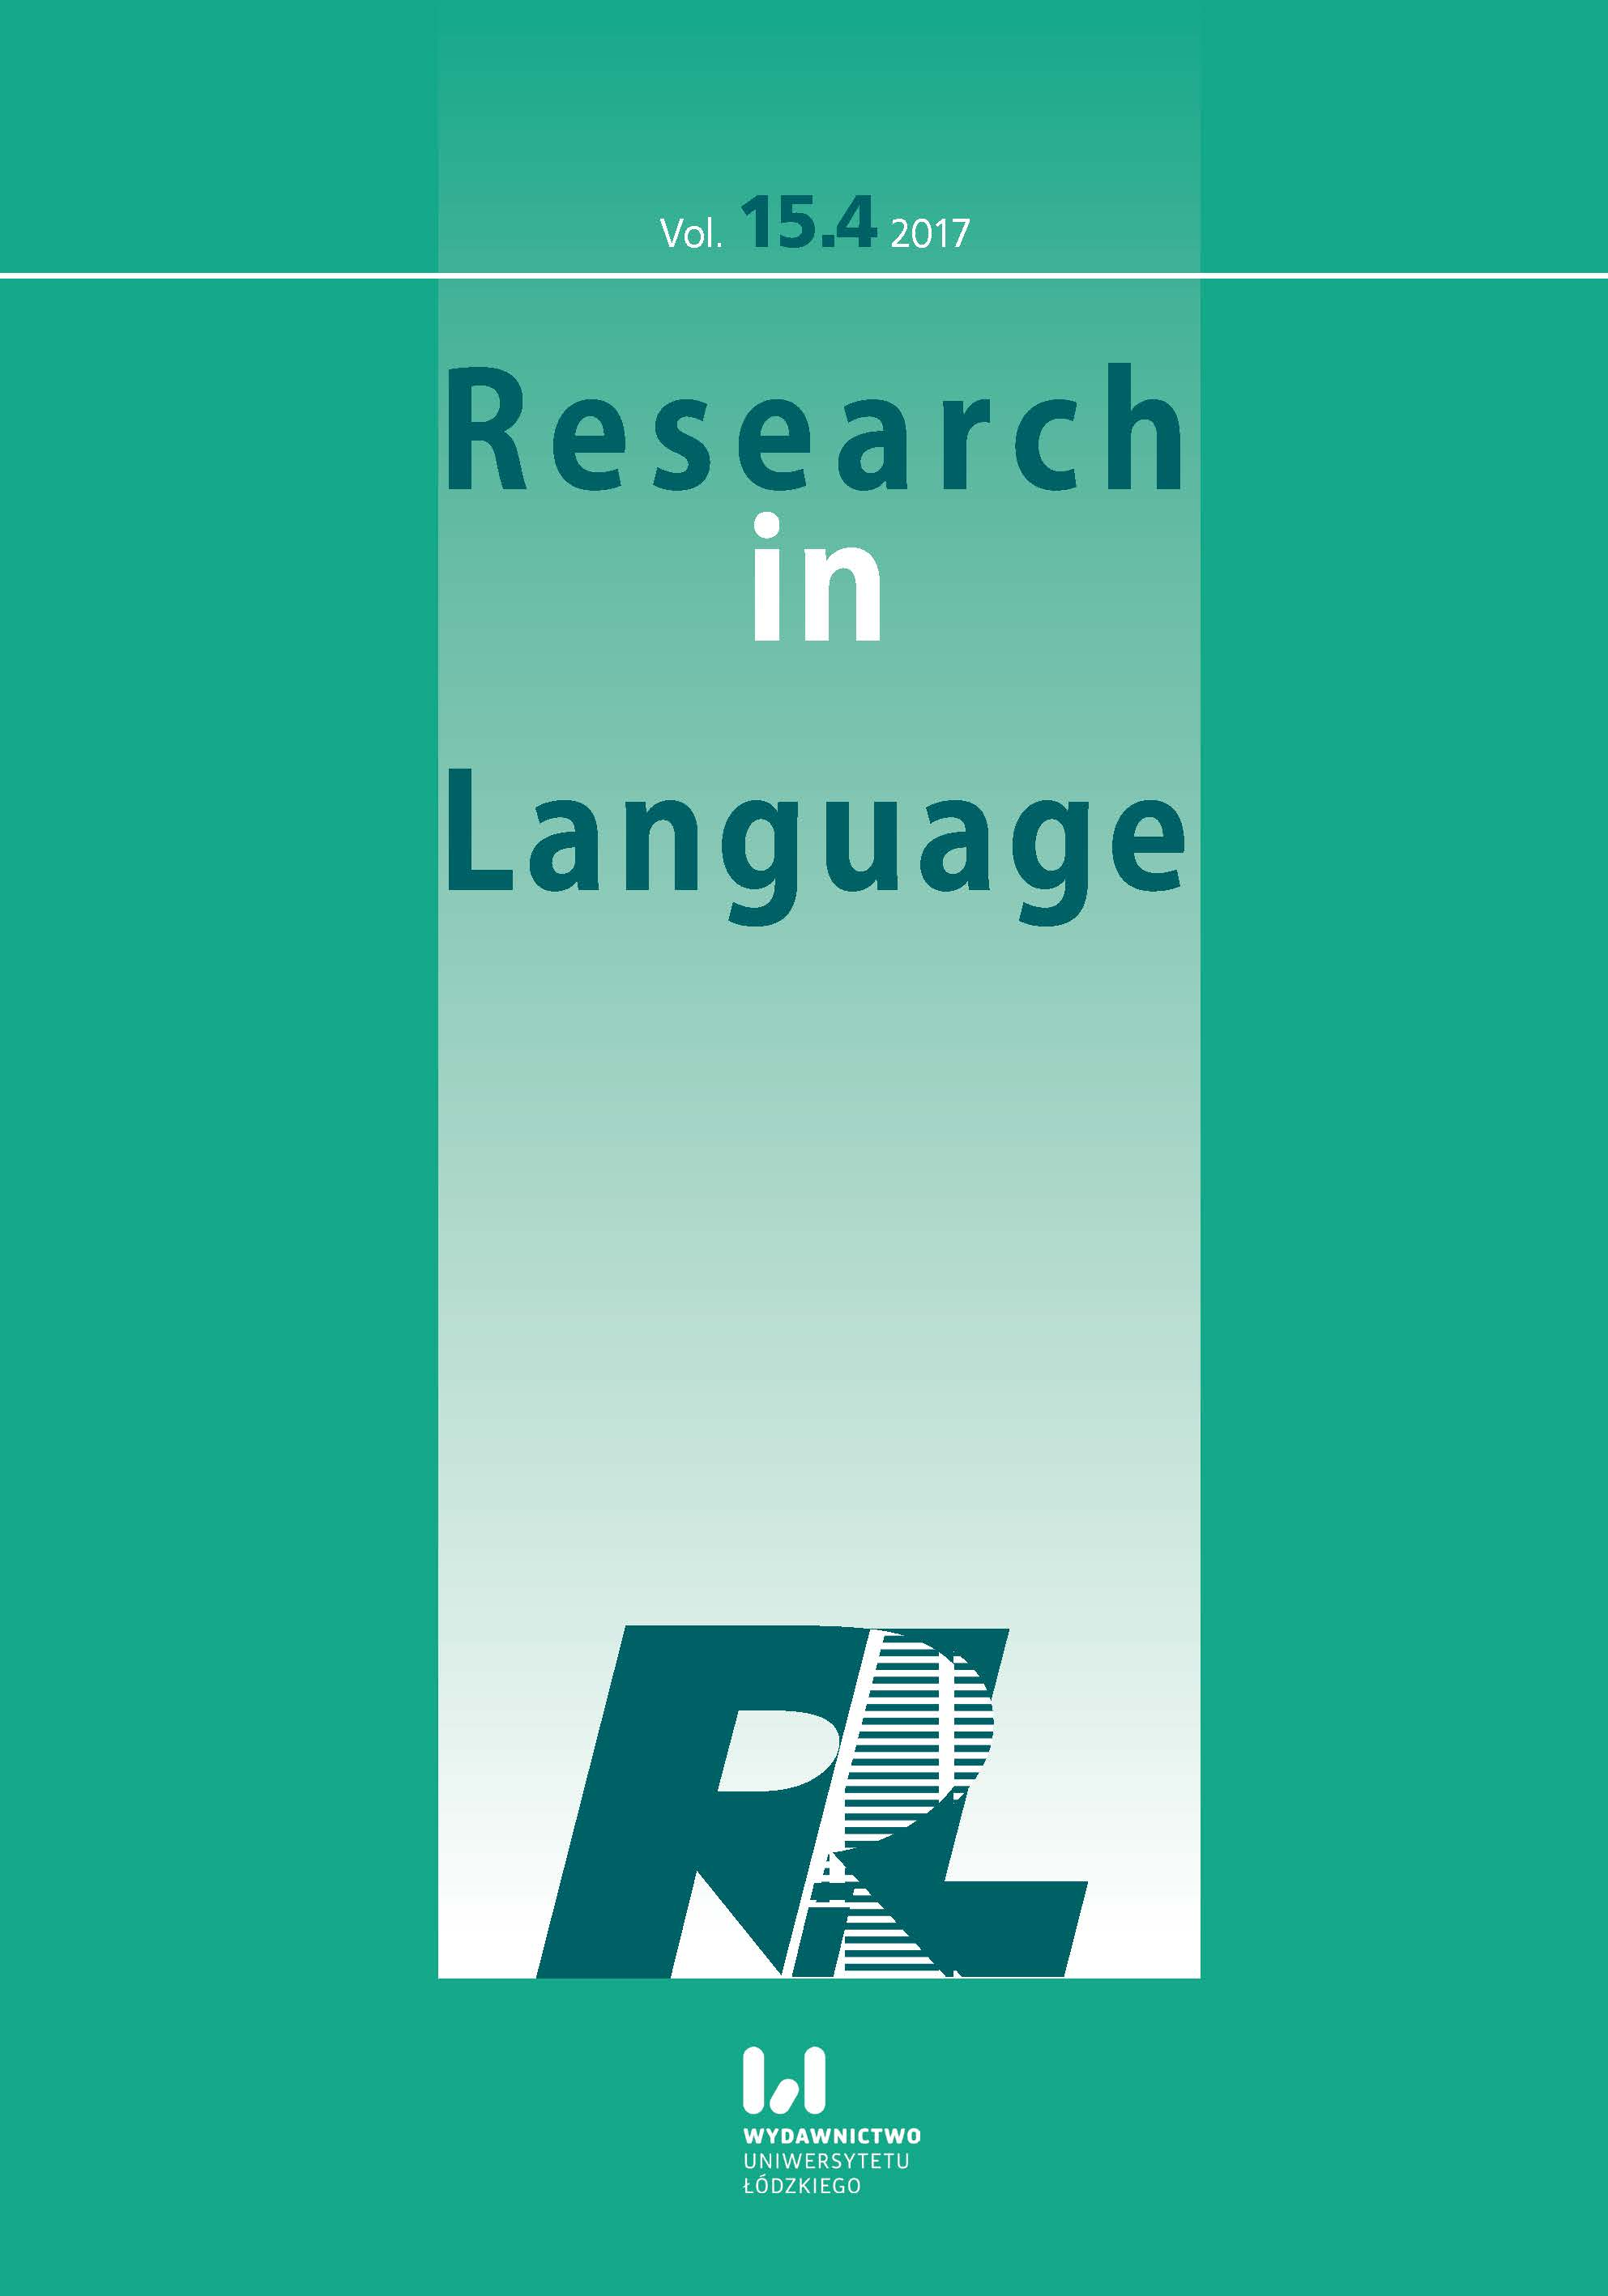 Research in Language (RiL) Cover Image